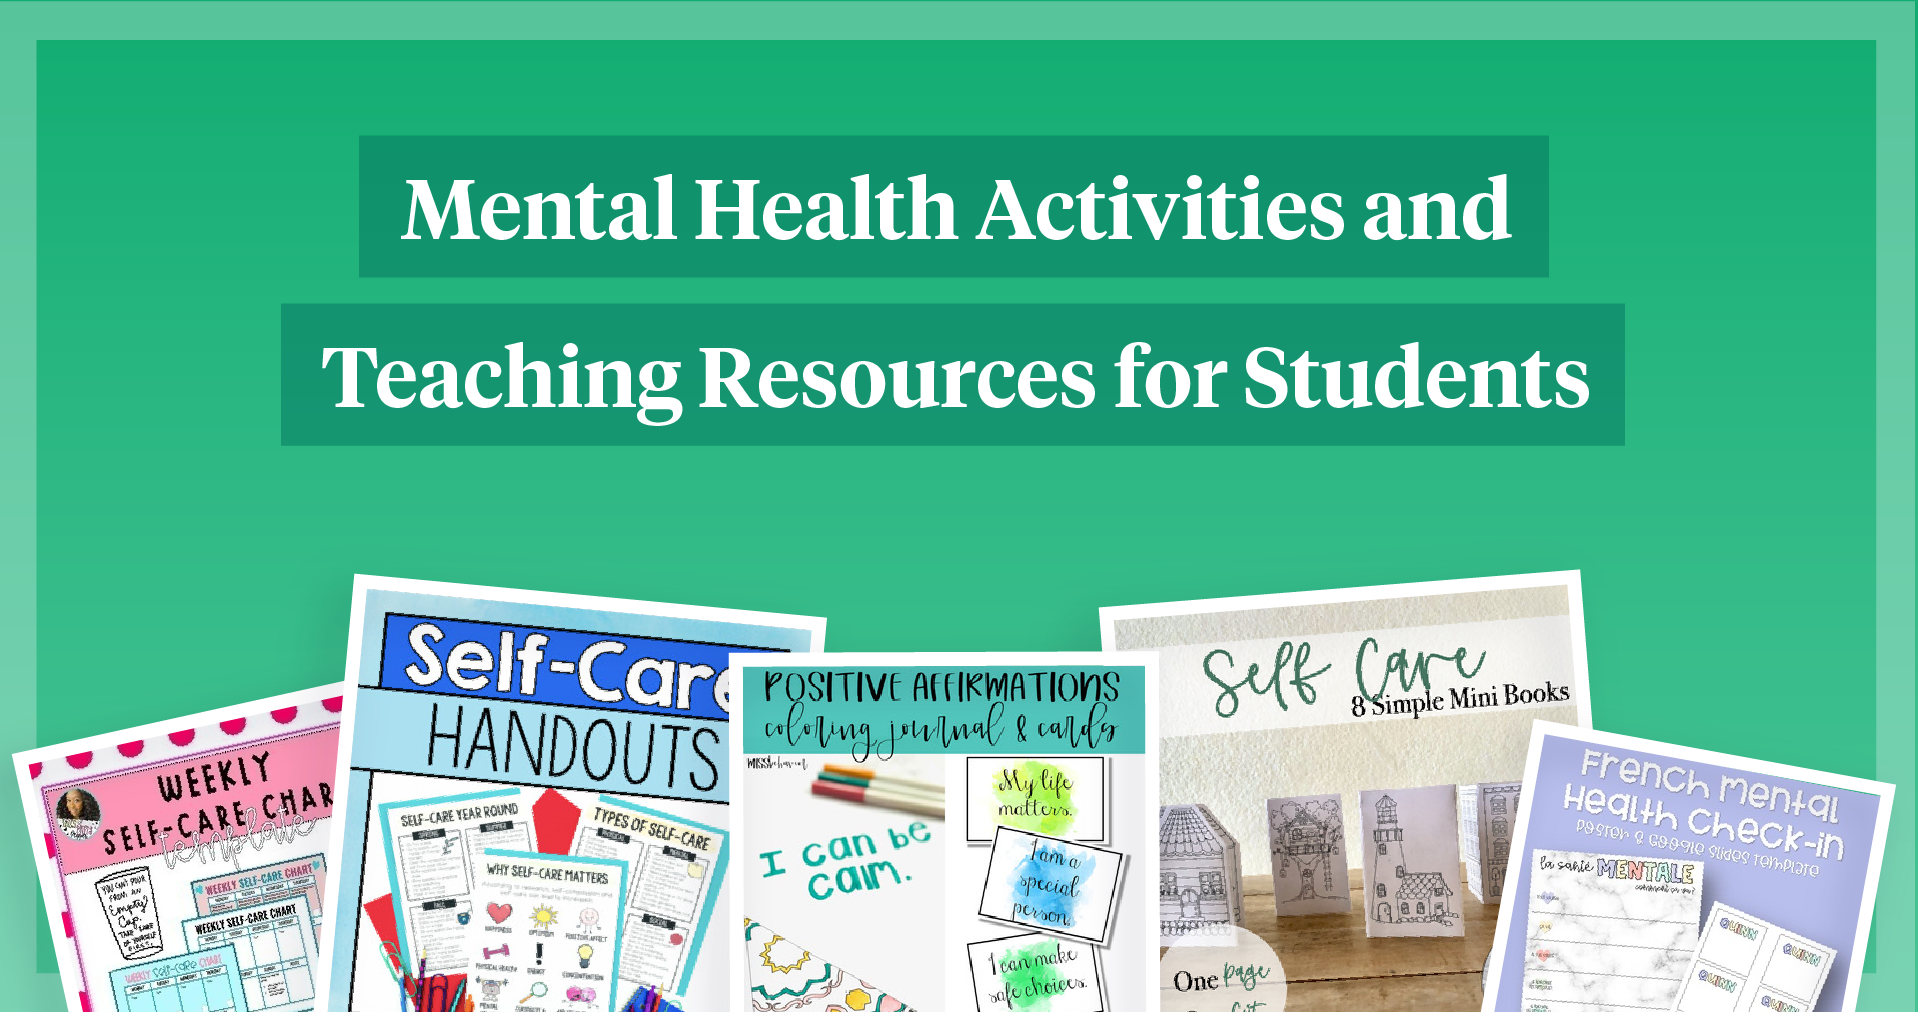 Mental Heath Activities and Teaching Resources for Students